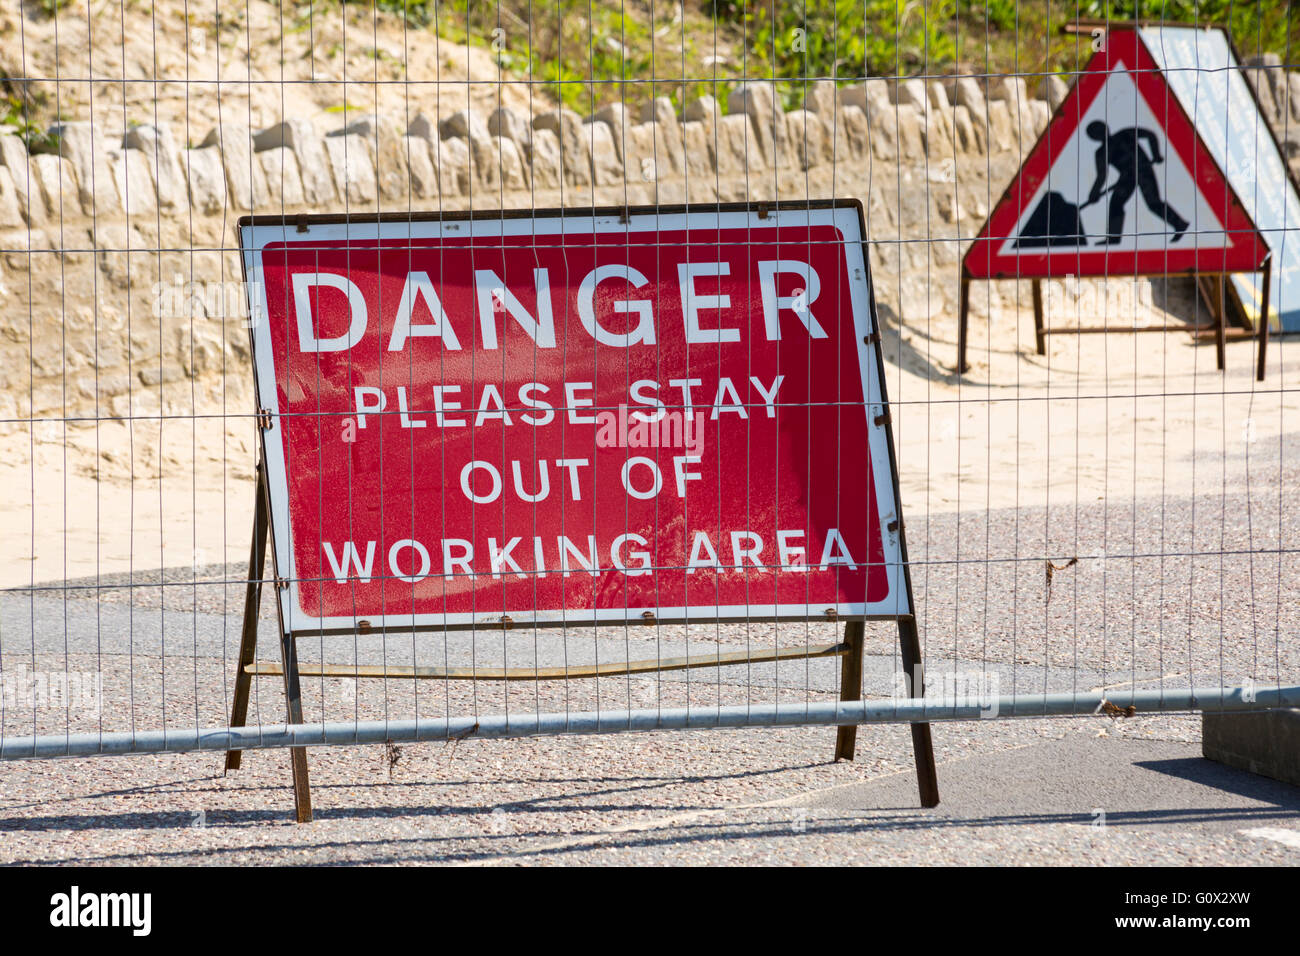 Danger please stay out of working area sign following recent landslide at Eastcliff, Bournemouth in May - Stock Image